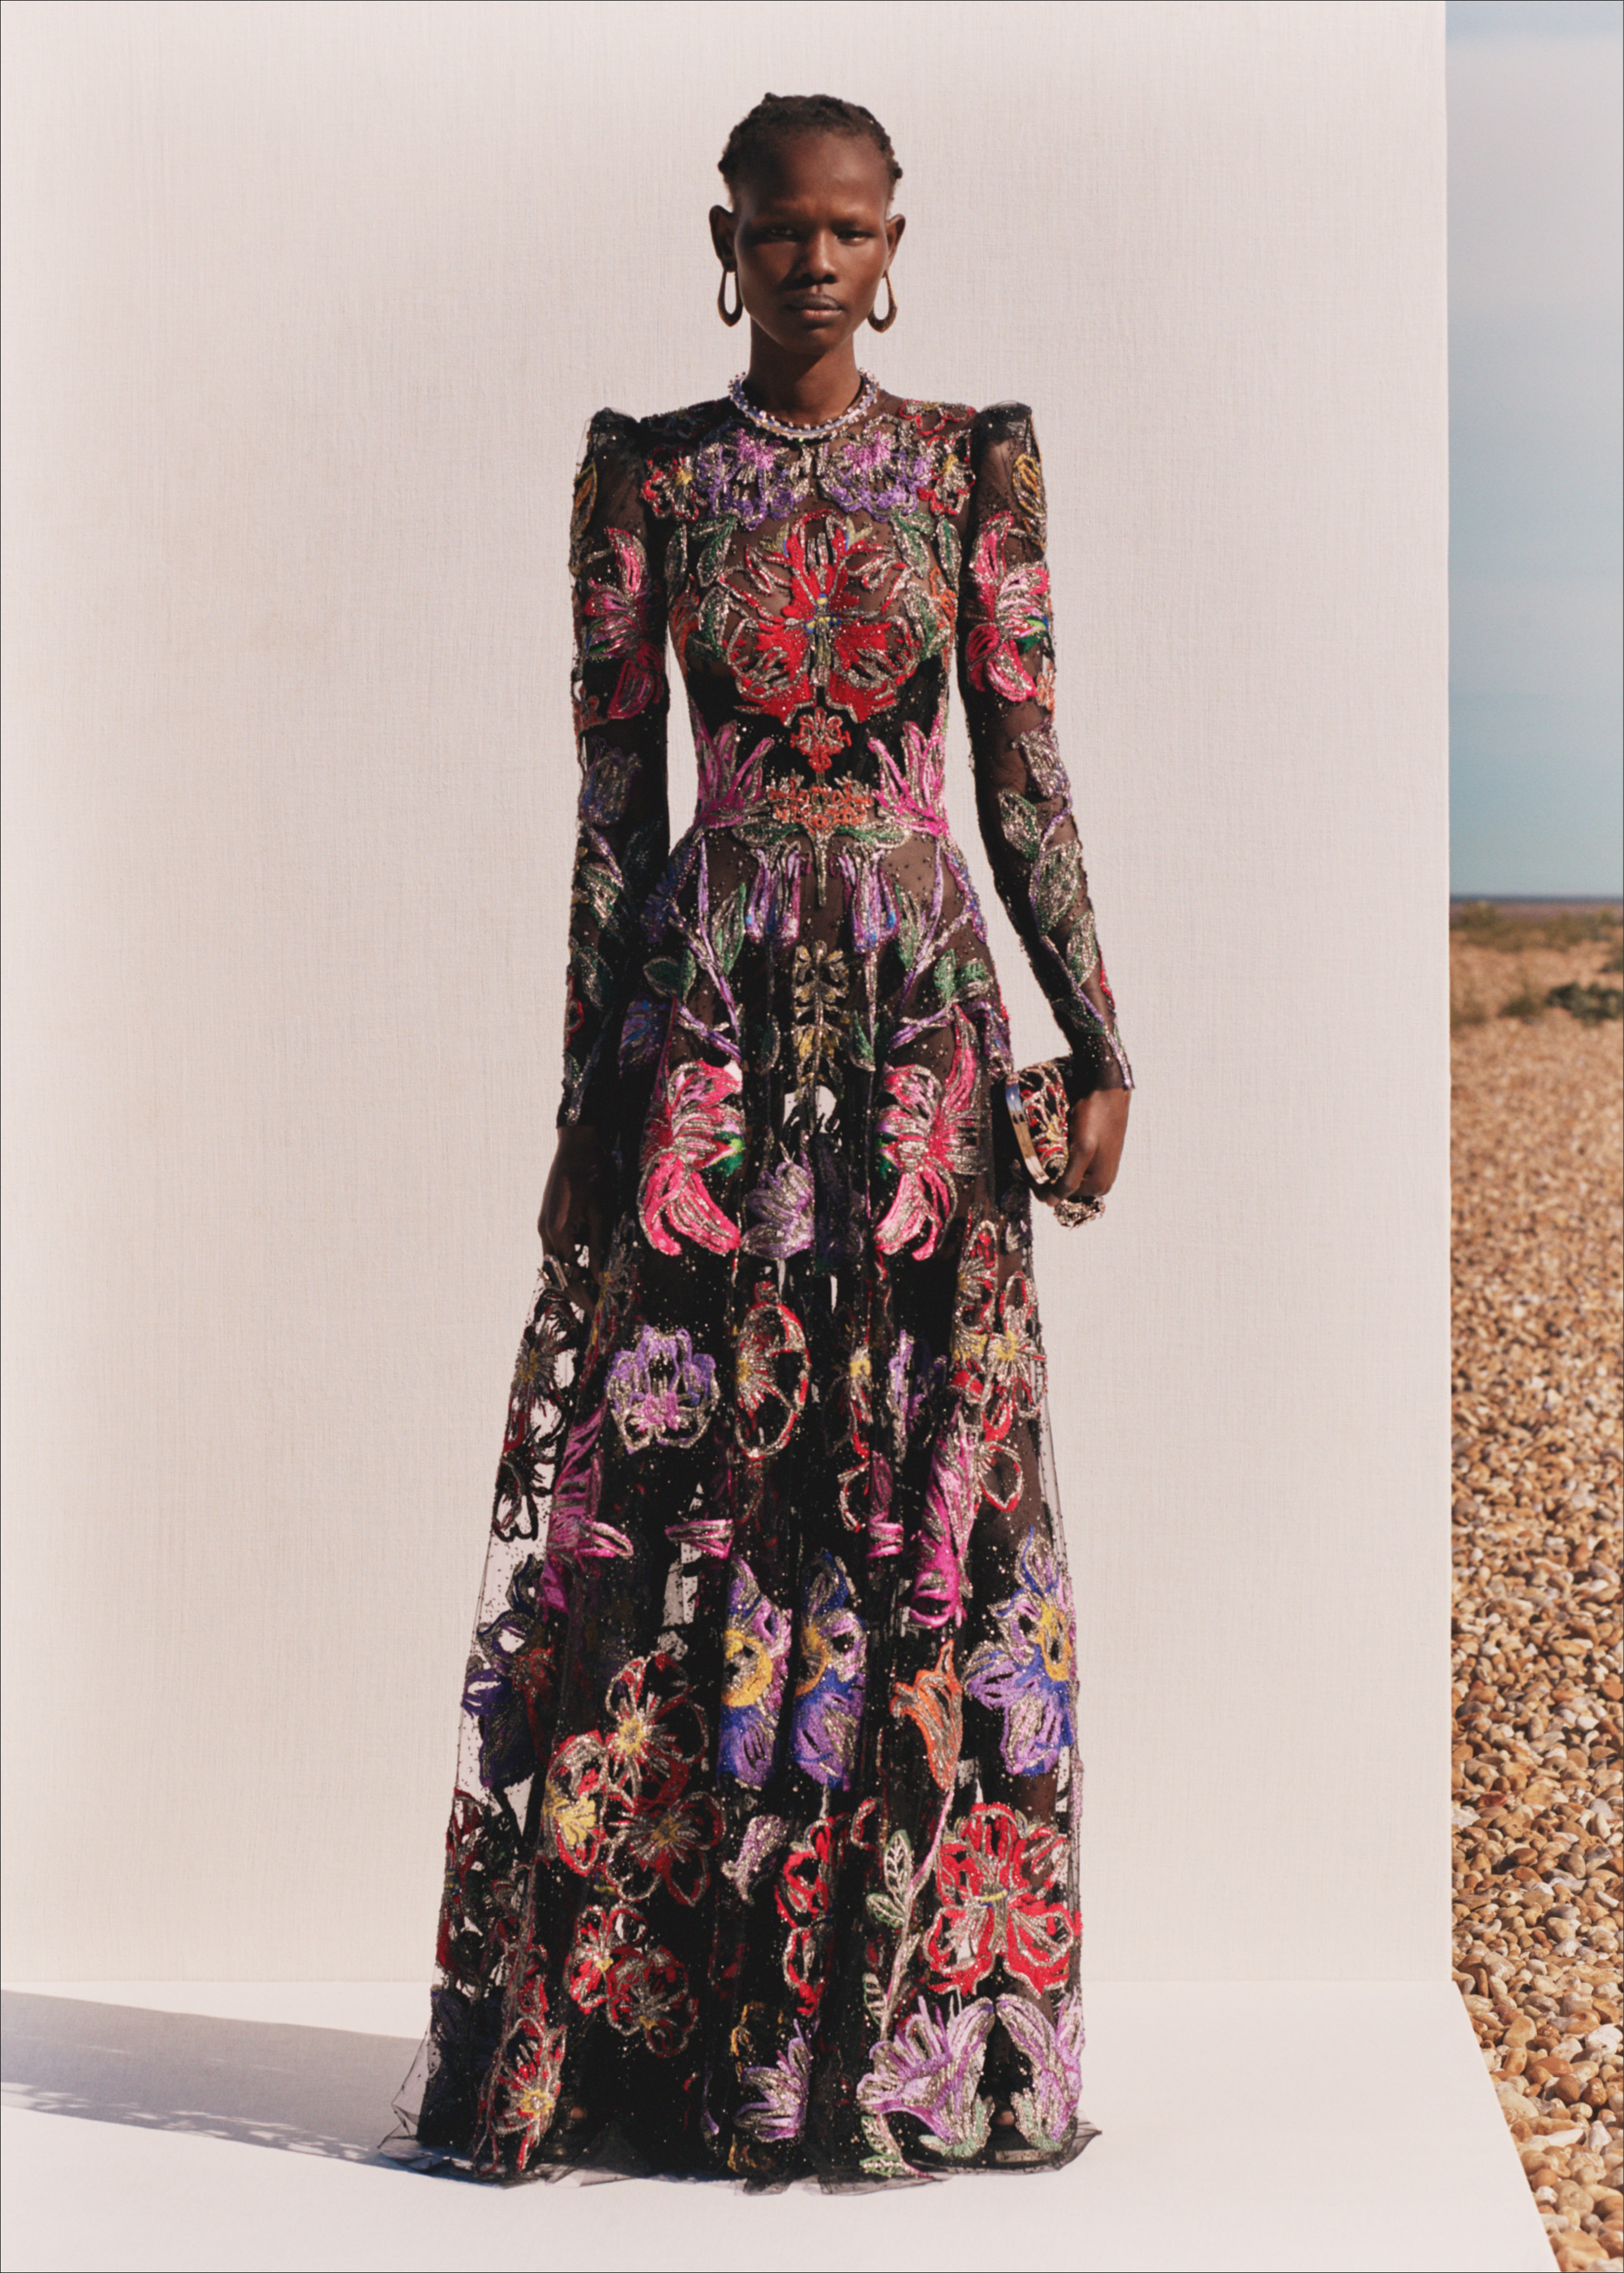 Alexander McQueen SS20 floral dress